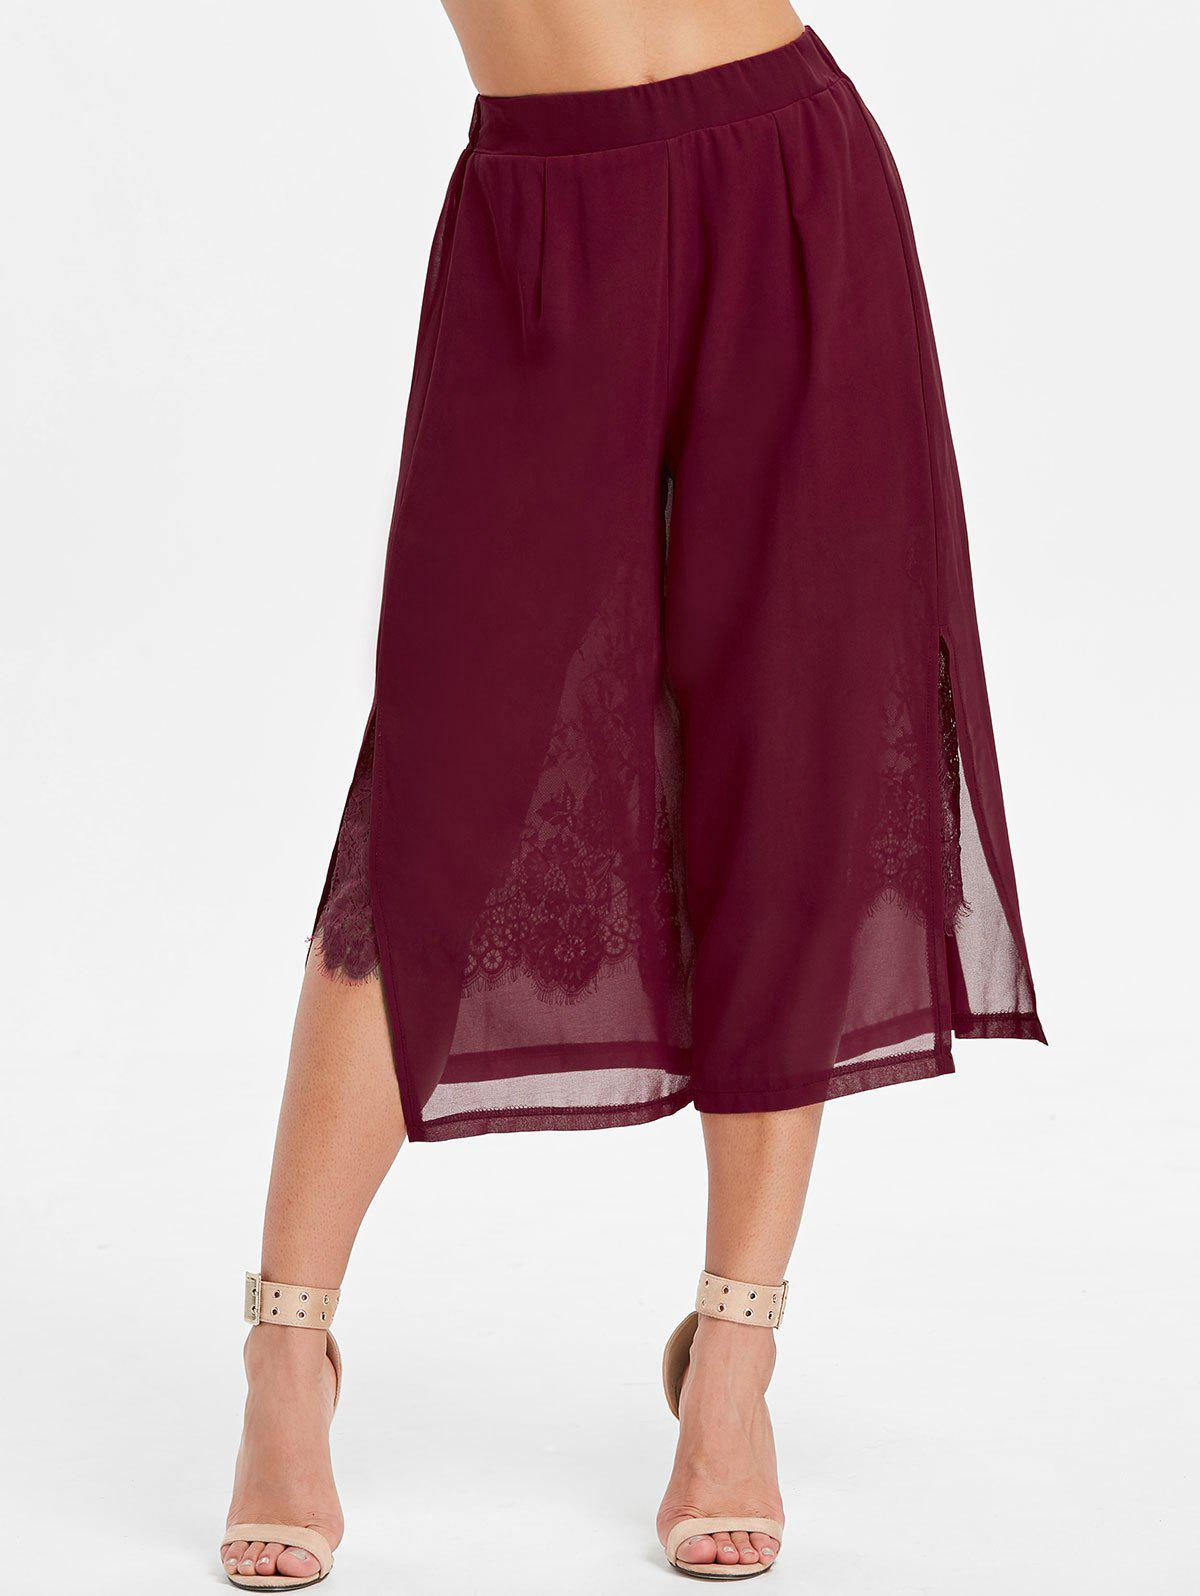 Unique High Rise Lace Insert Chiffon Pants